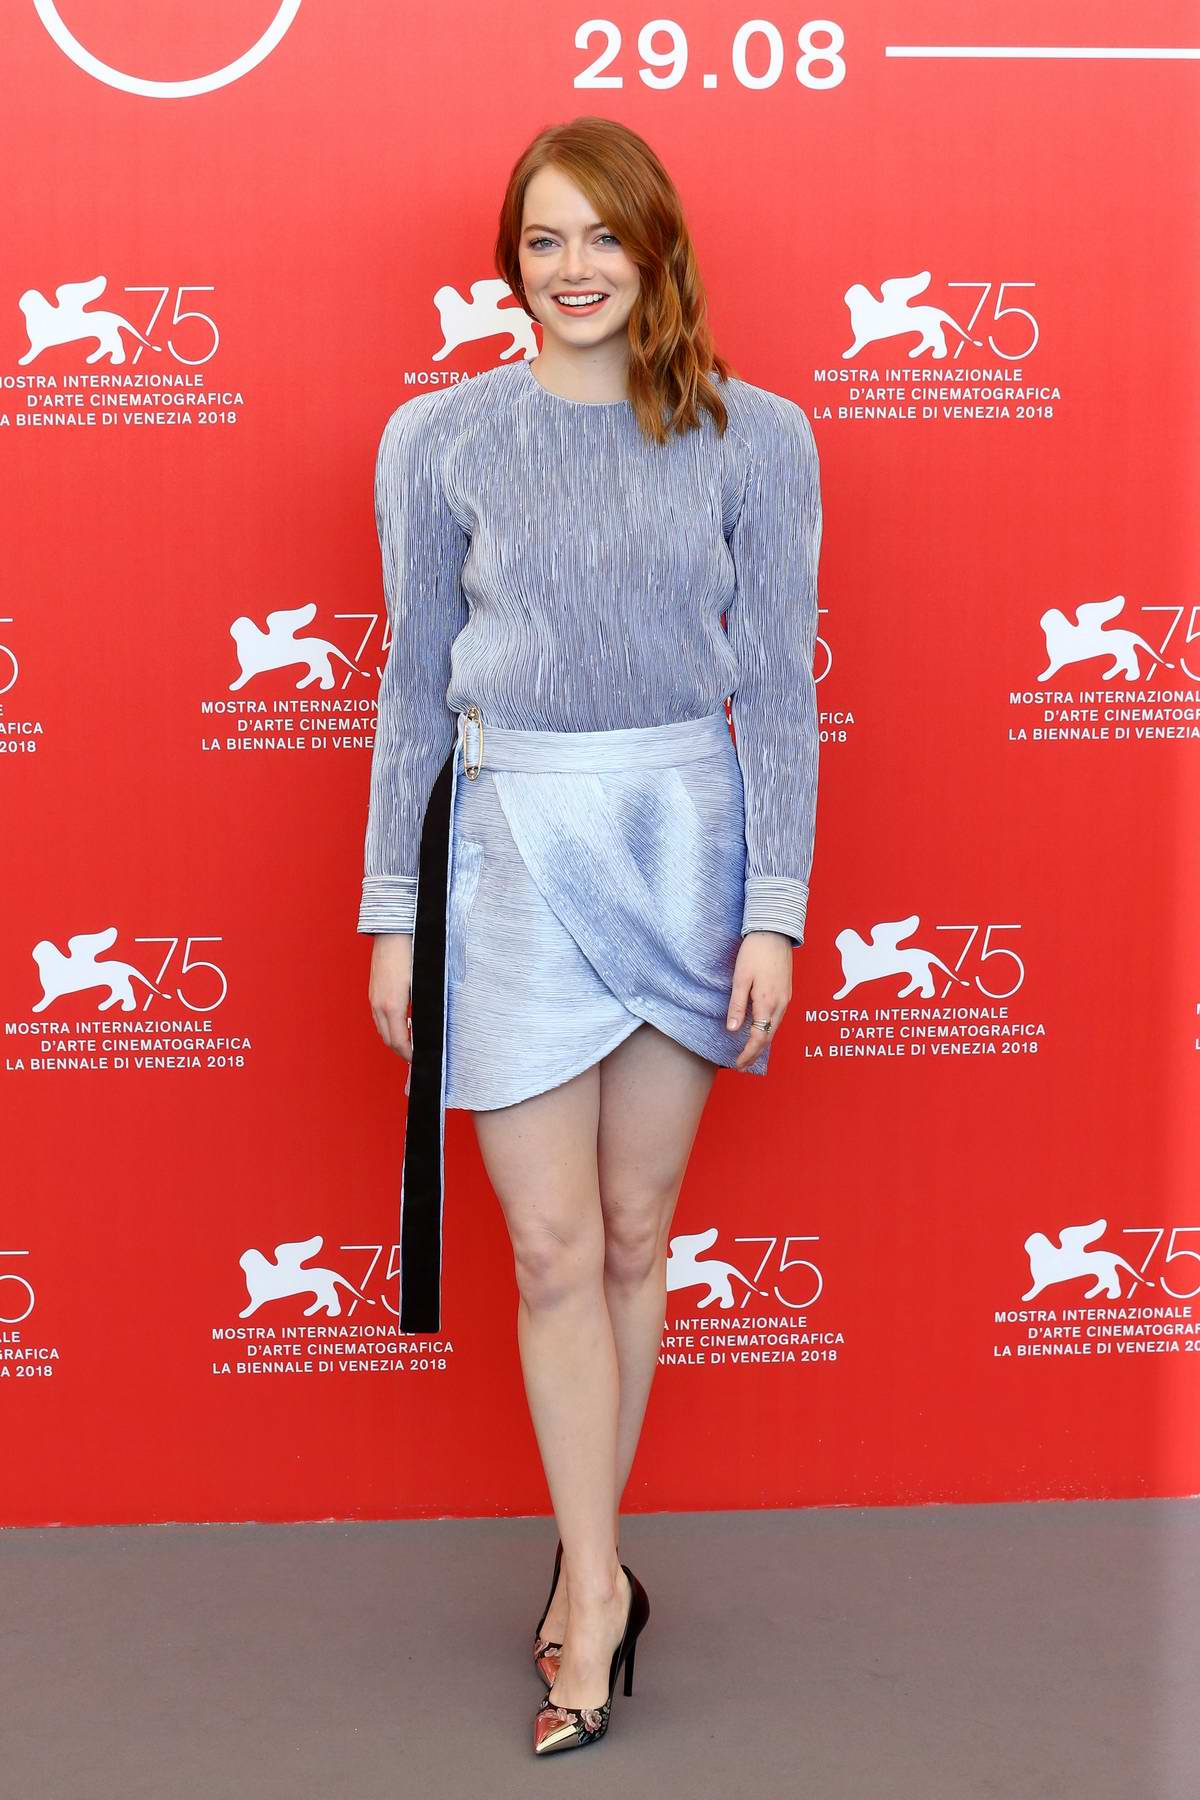 Emma Stone attends 'The Favourite' photocall during the 75th Venice Film Festival in Venice, Italy